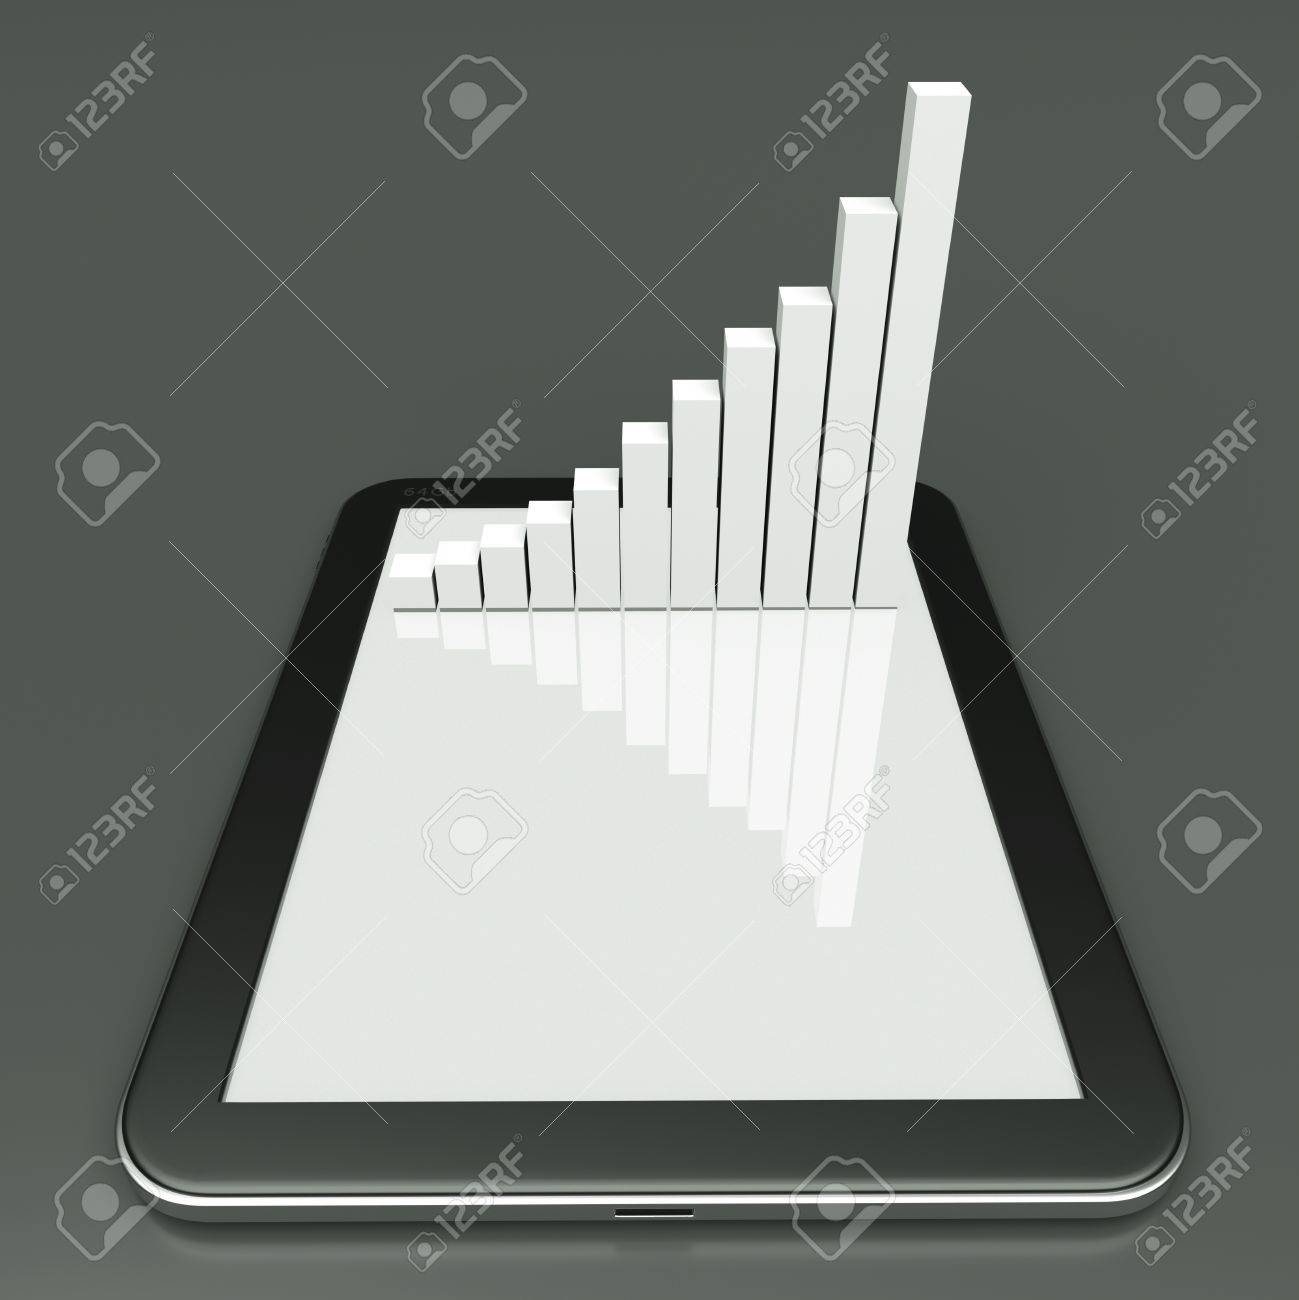 a tablet pc and business diagram as a concept of process of business development Stock Photo - 12711628